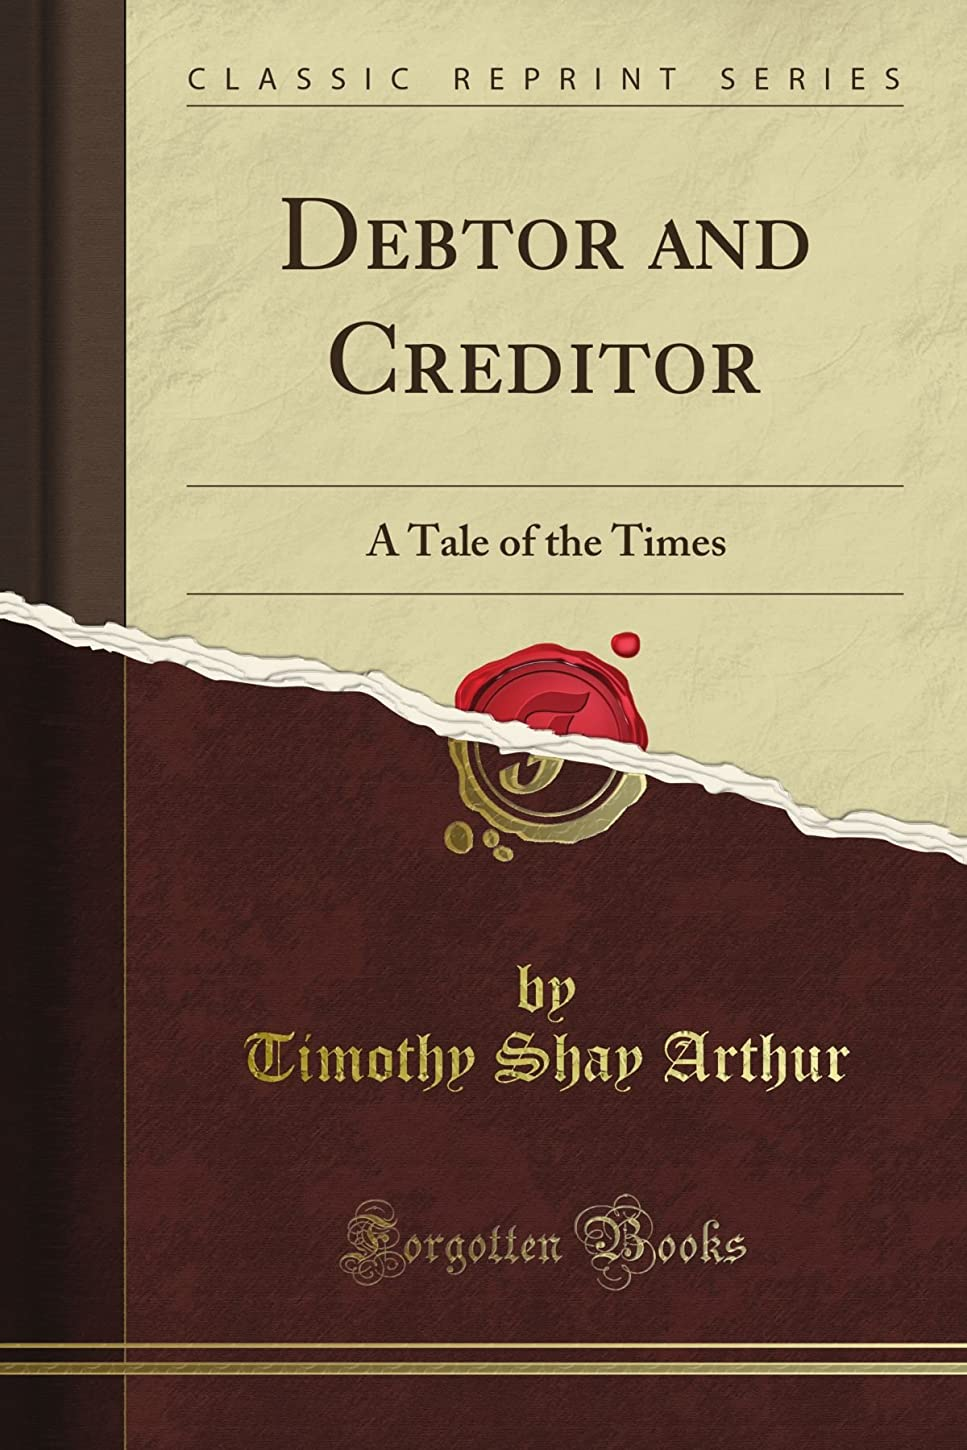 聴覚障害者イサカ上Debtor and Creditor: A Tale of the Times (Classic Reprint)